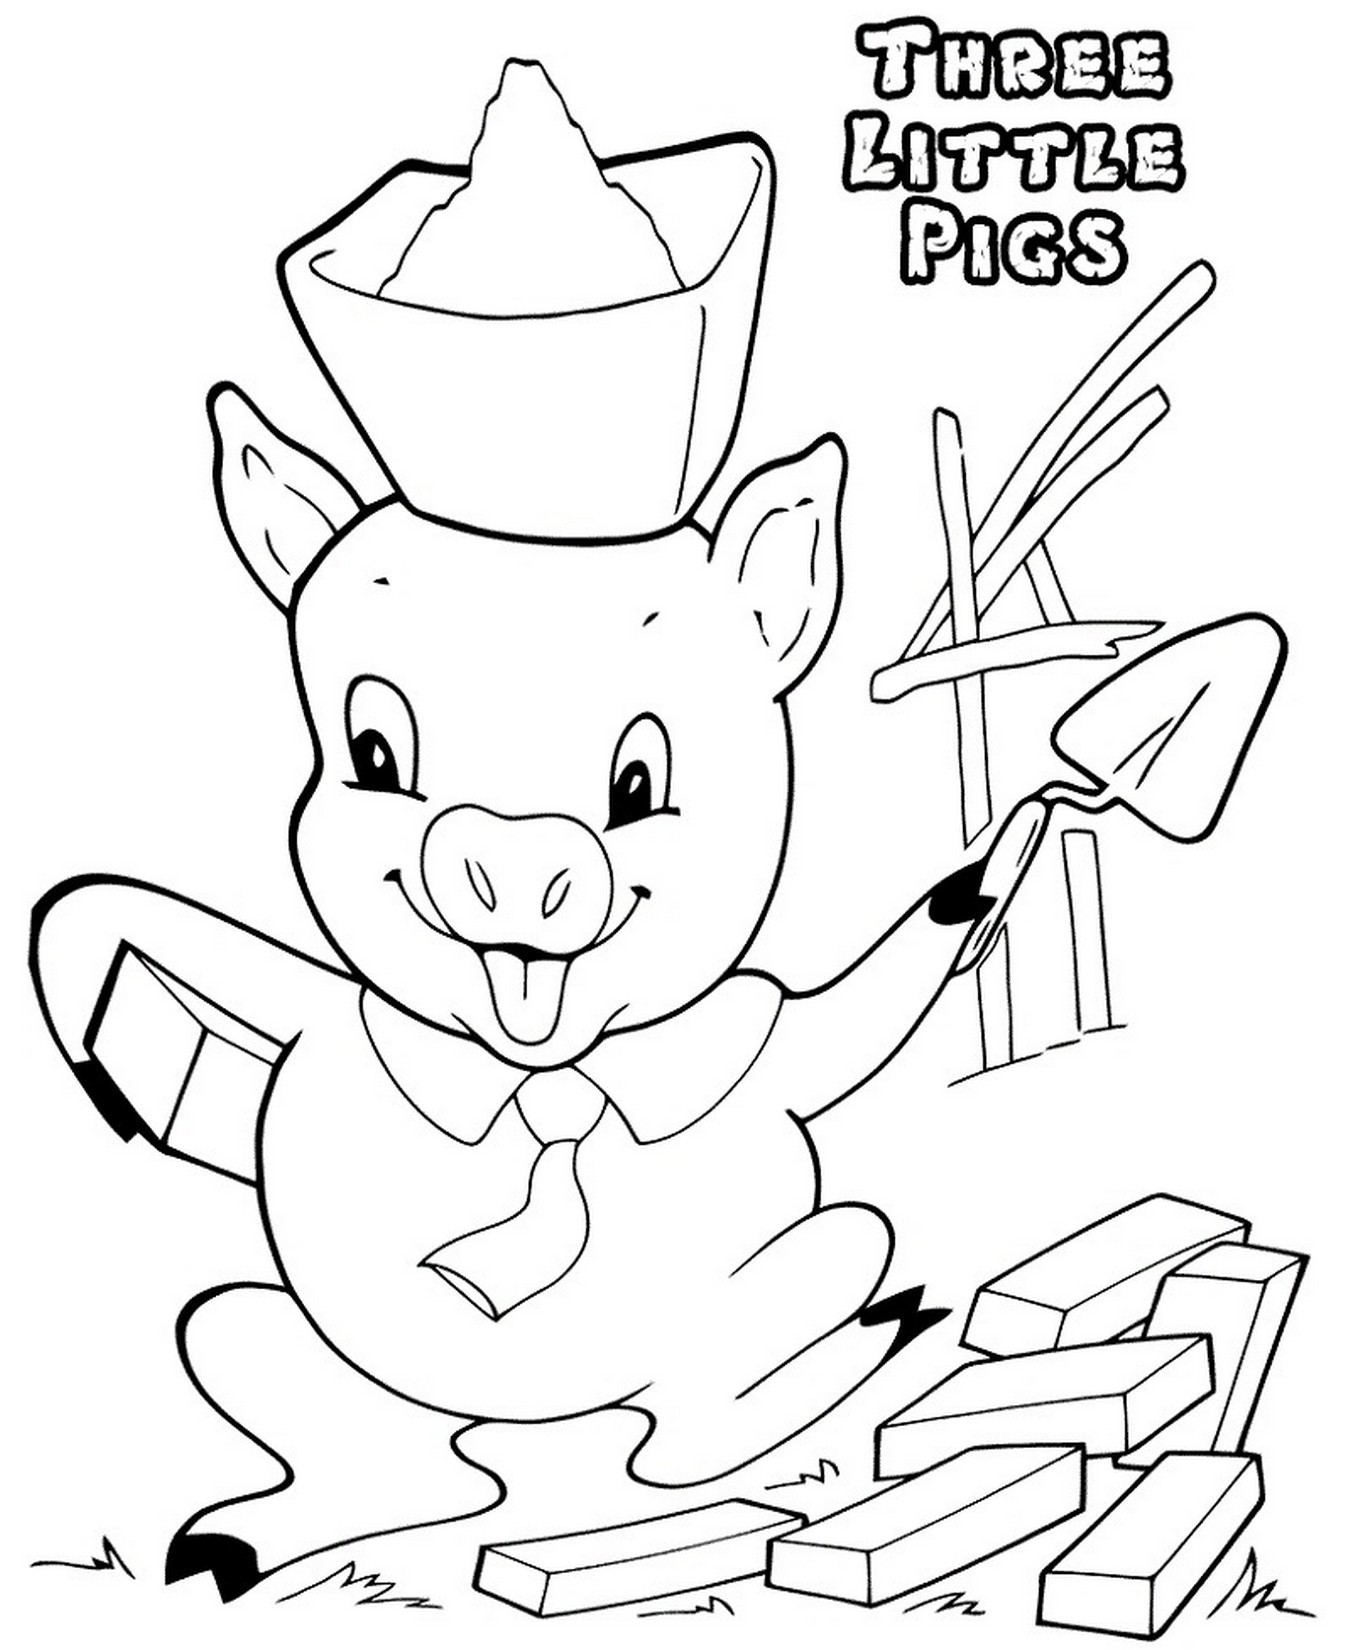 Best ideas about Preschool Coloring Sheets For The 3 Little Pigs . Save or Pin Three Little Pigs Coloring Pages for Preschool Now.